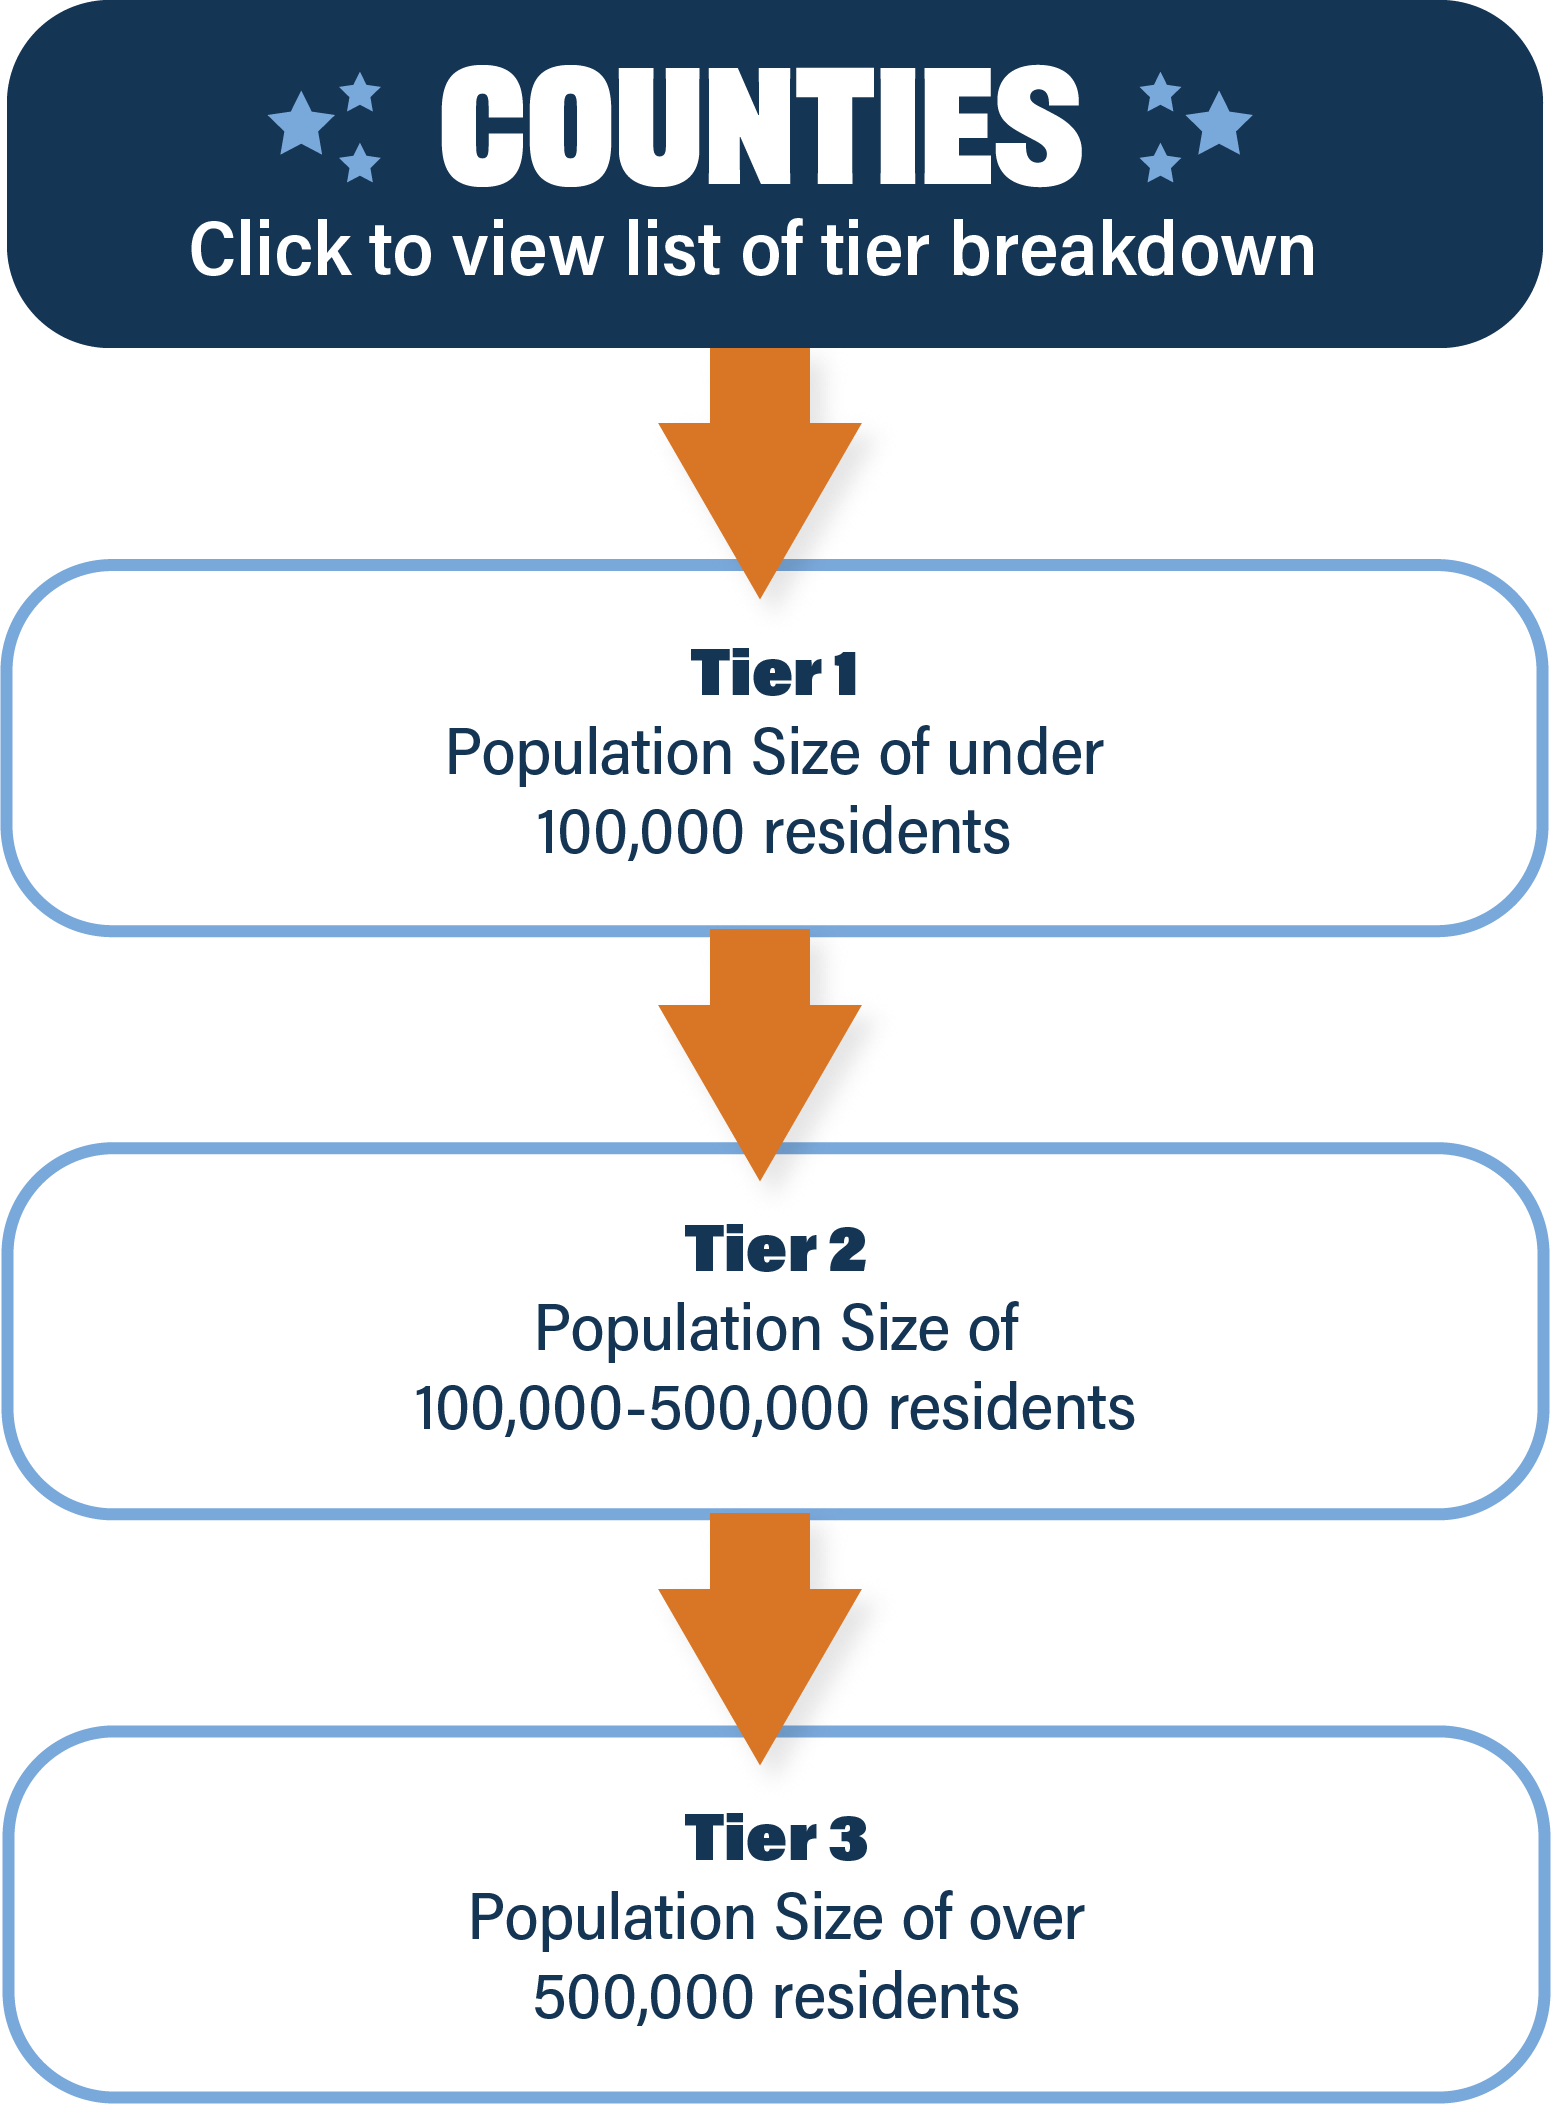 Counties: Click to view list of tier breakdown